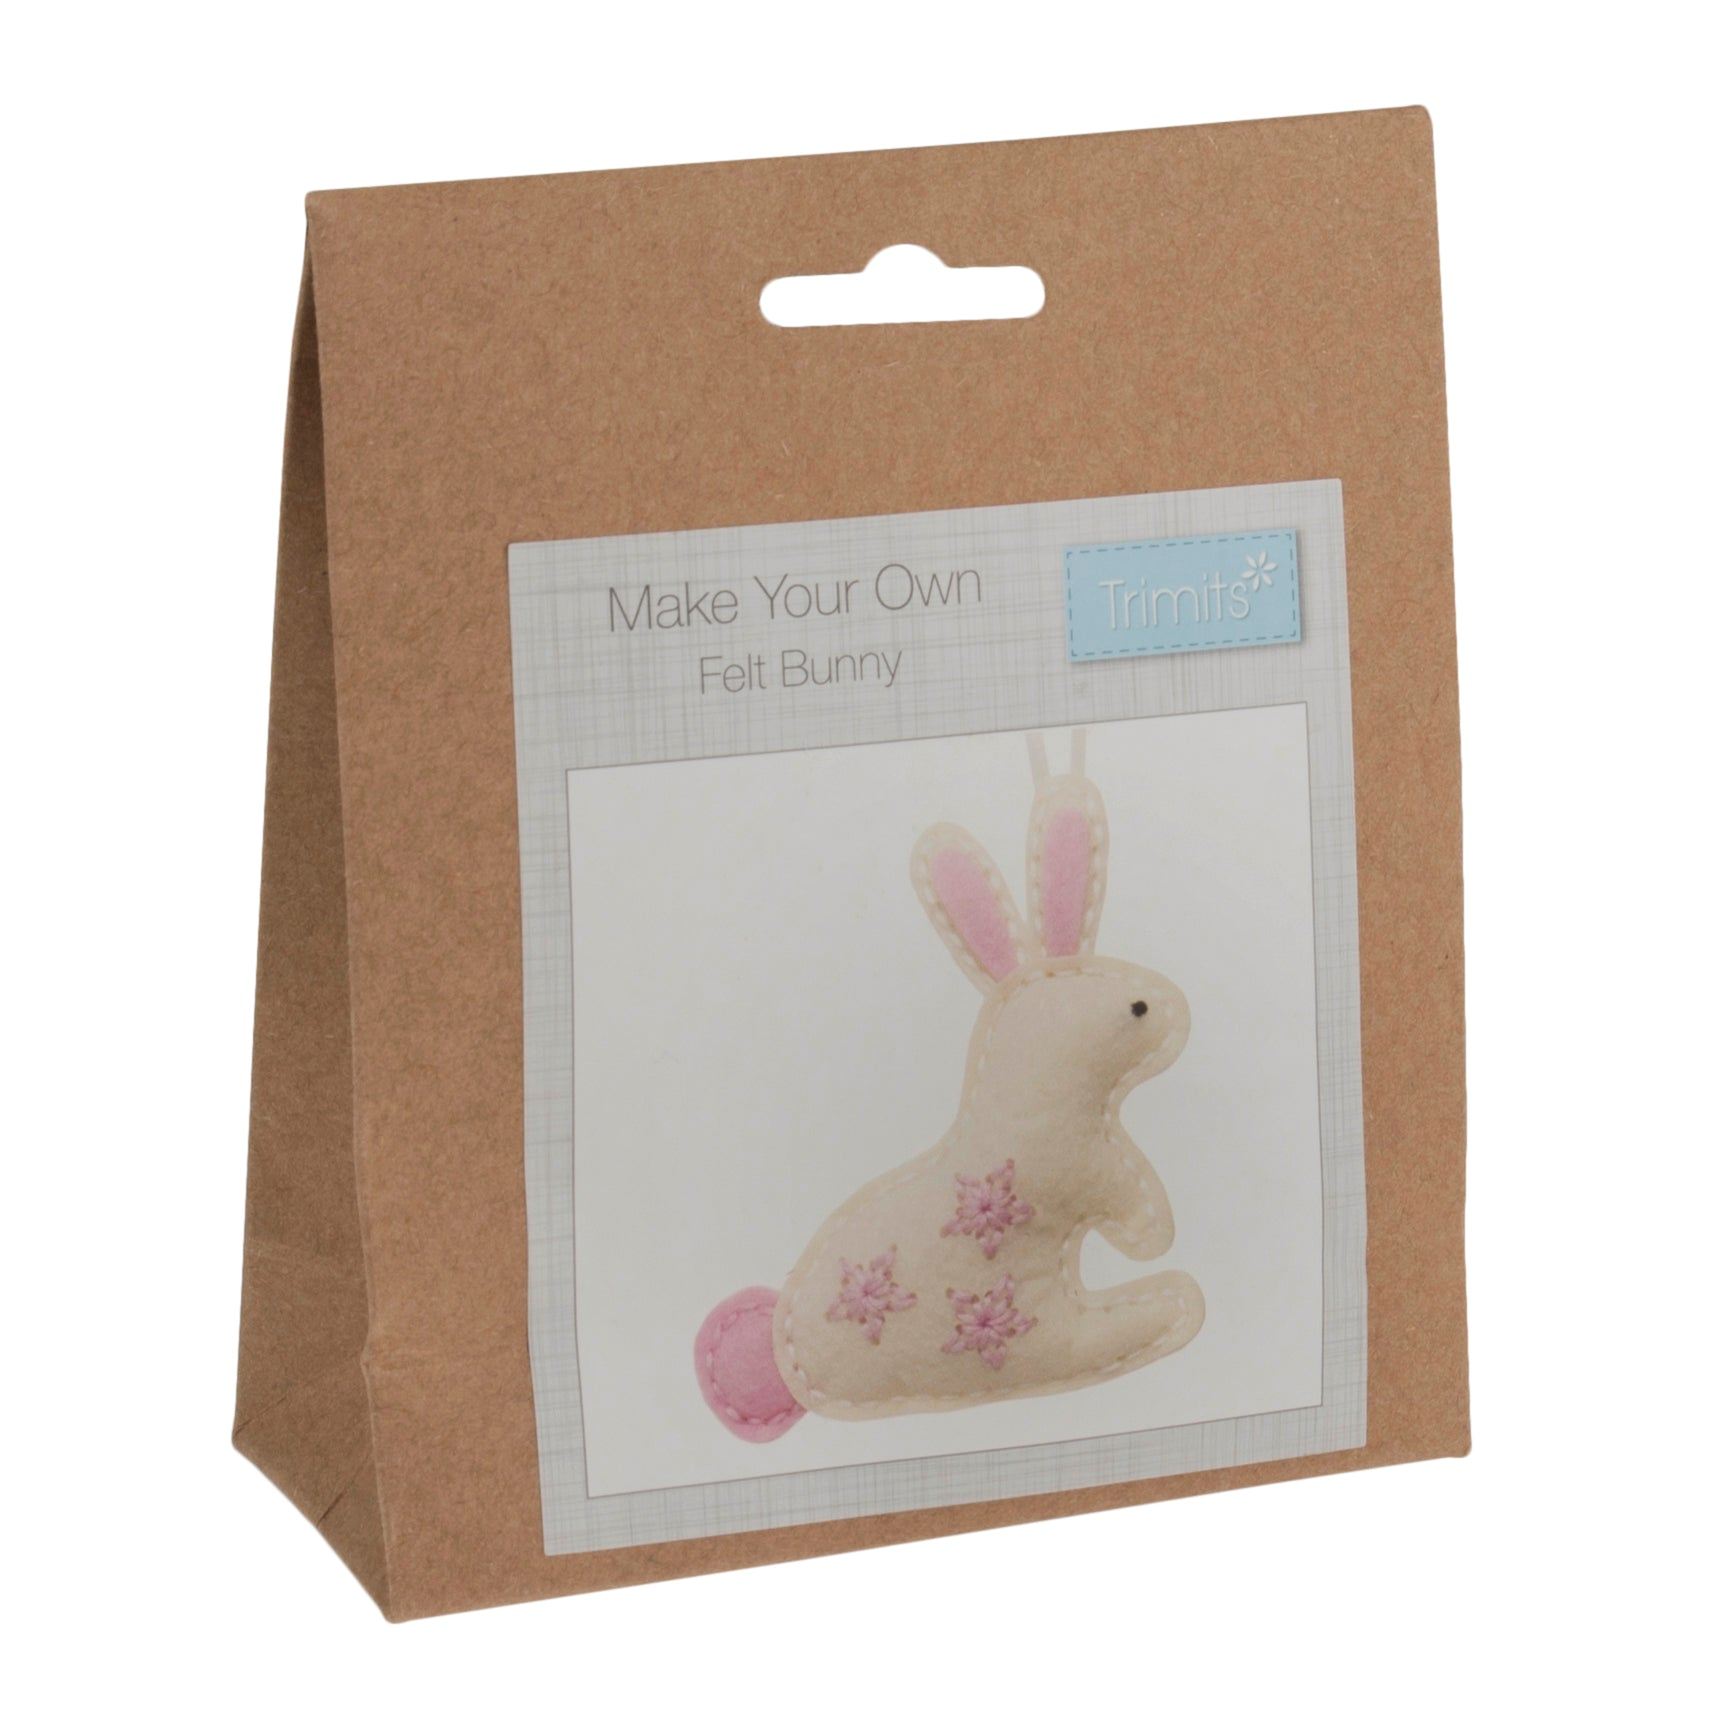 Felt Bunny Kit, Make Your Own Bunny Rabbit, GCK014 - Fabric and Ribbon